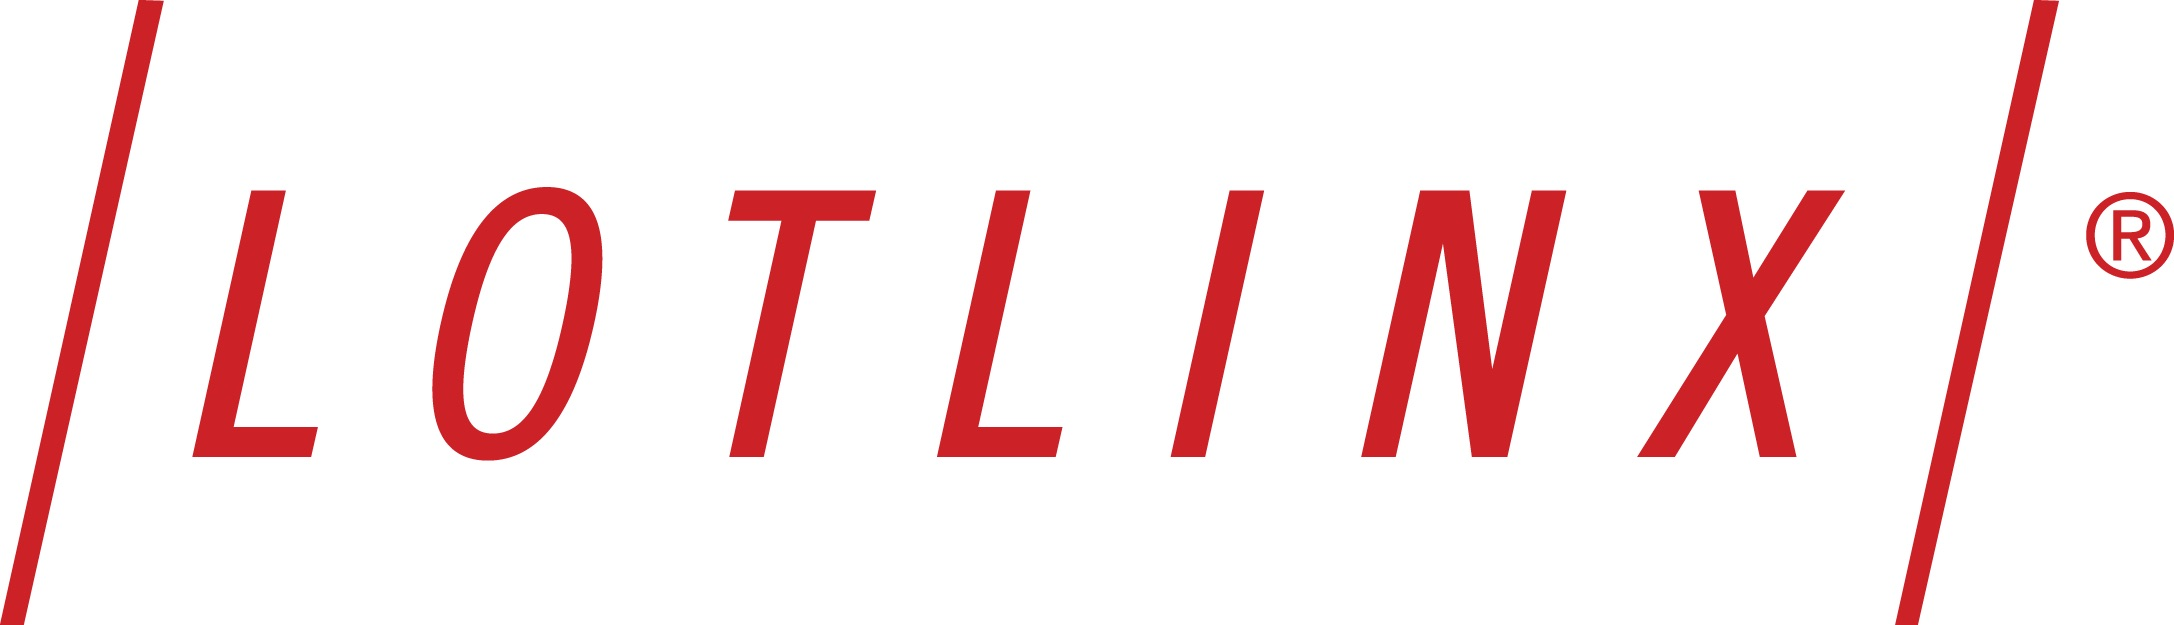 https://growthzonesitesprod.azureedge.net/wp-content/uploads/sites/1315/2019/11/LotLinx-Logo-Red-MTADA.jpg